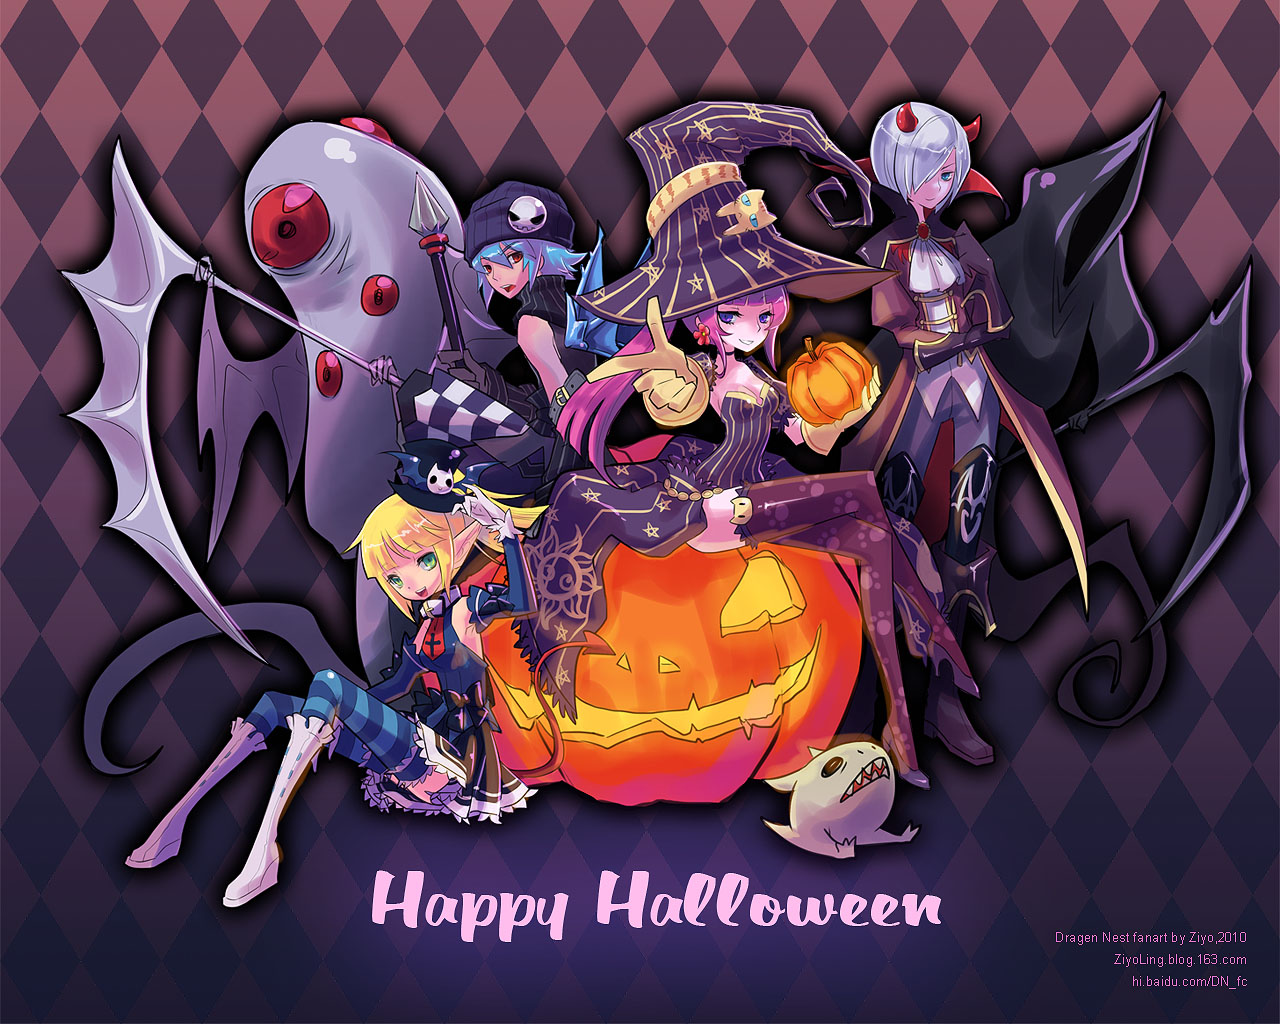 Happy Halloween 2010 by ZiyoLing